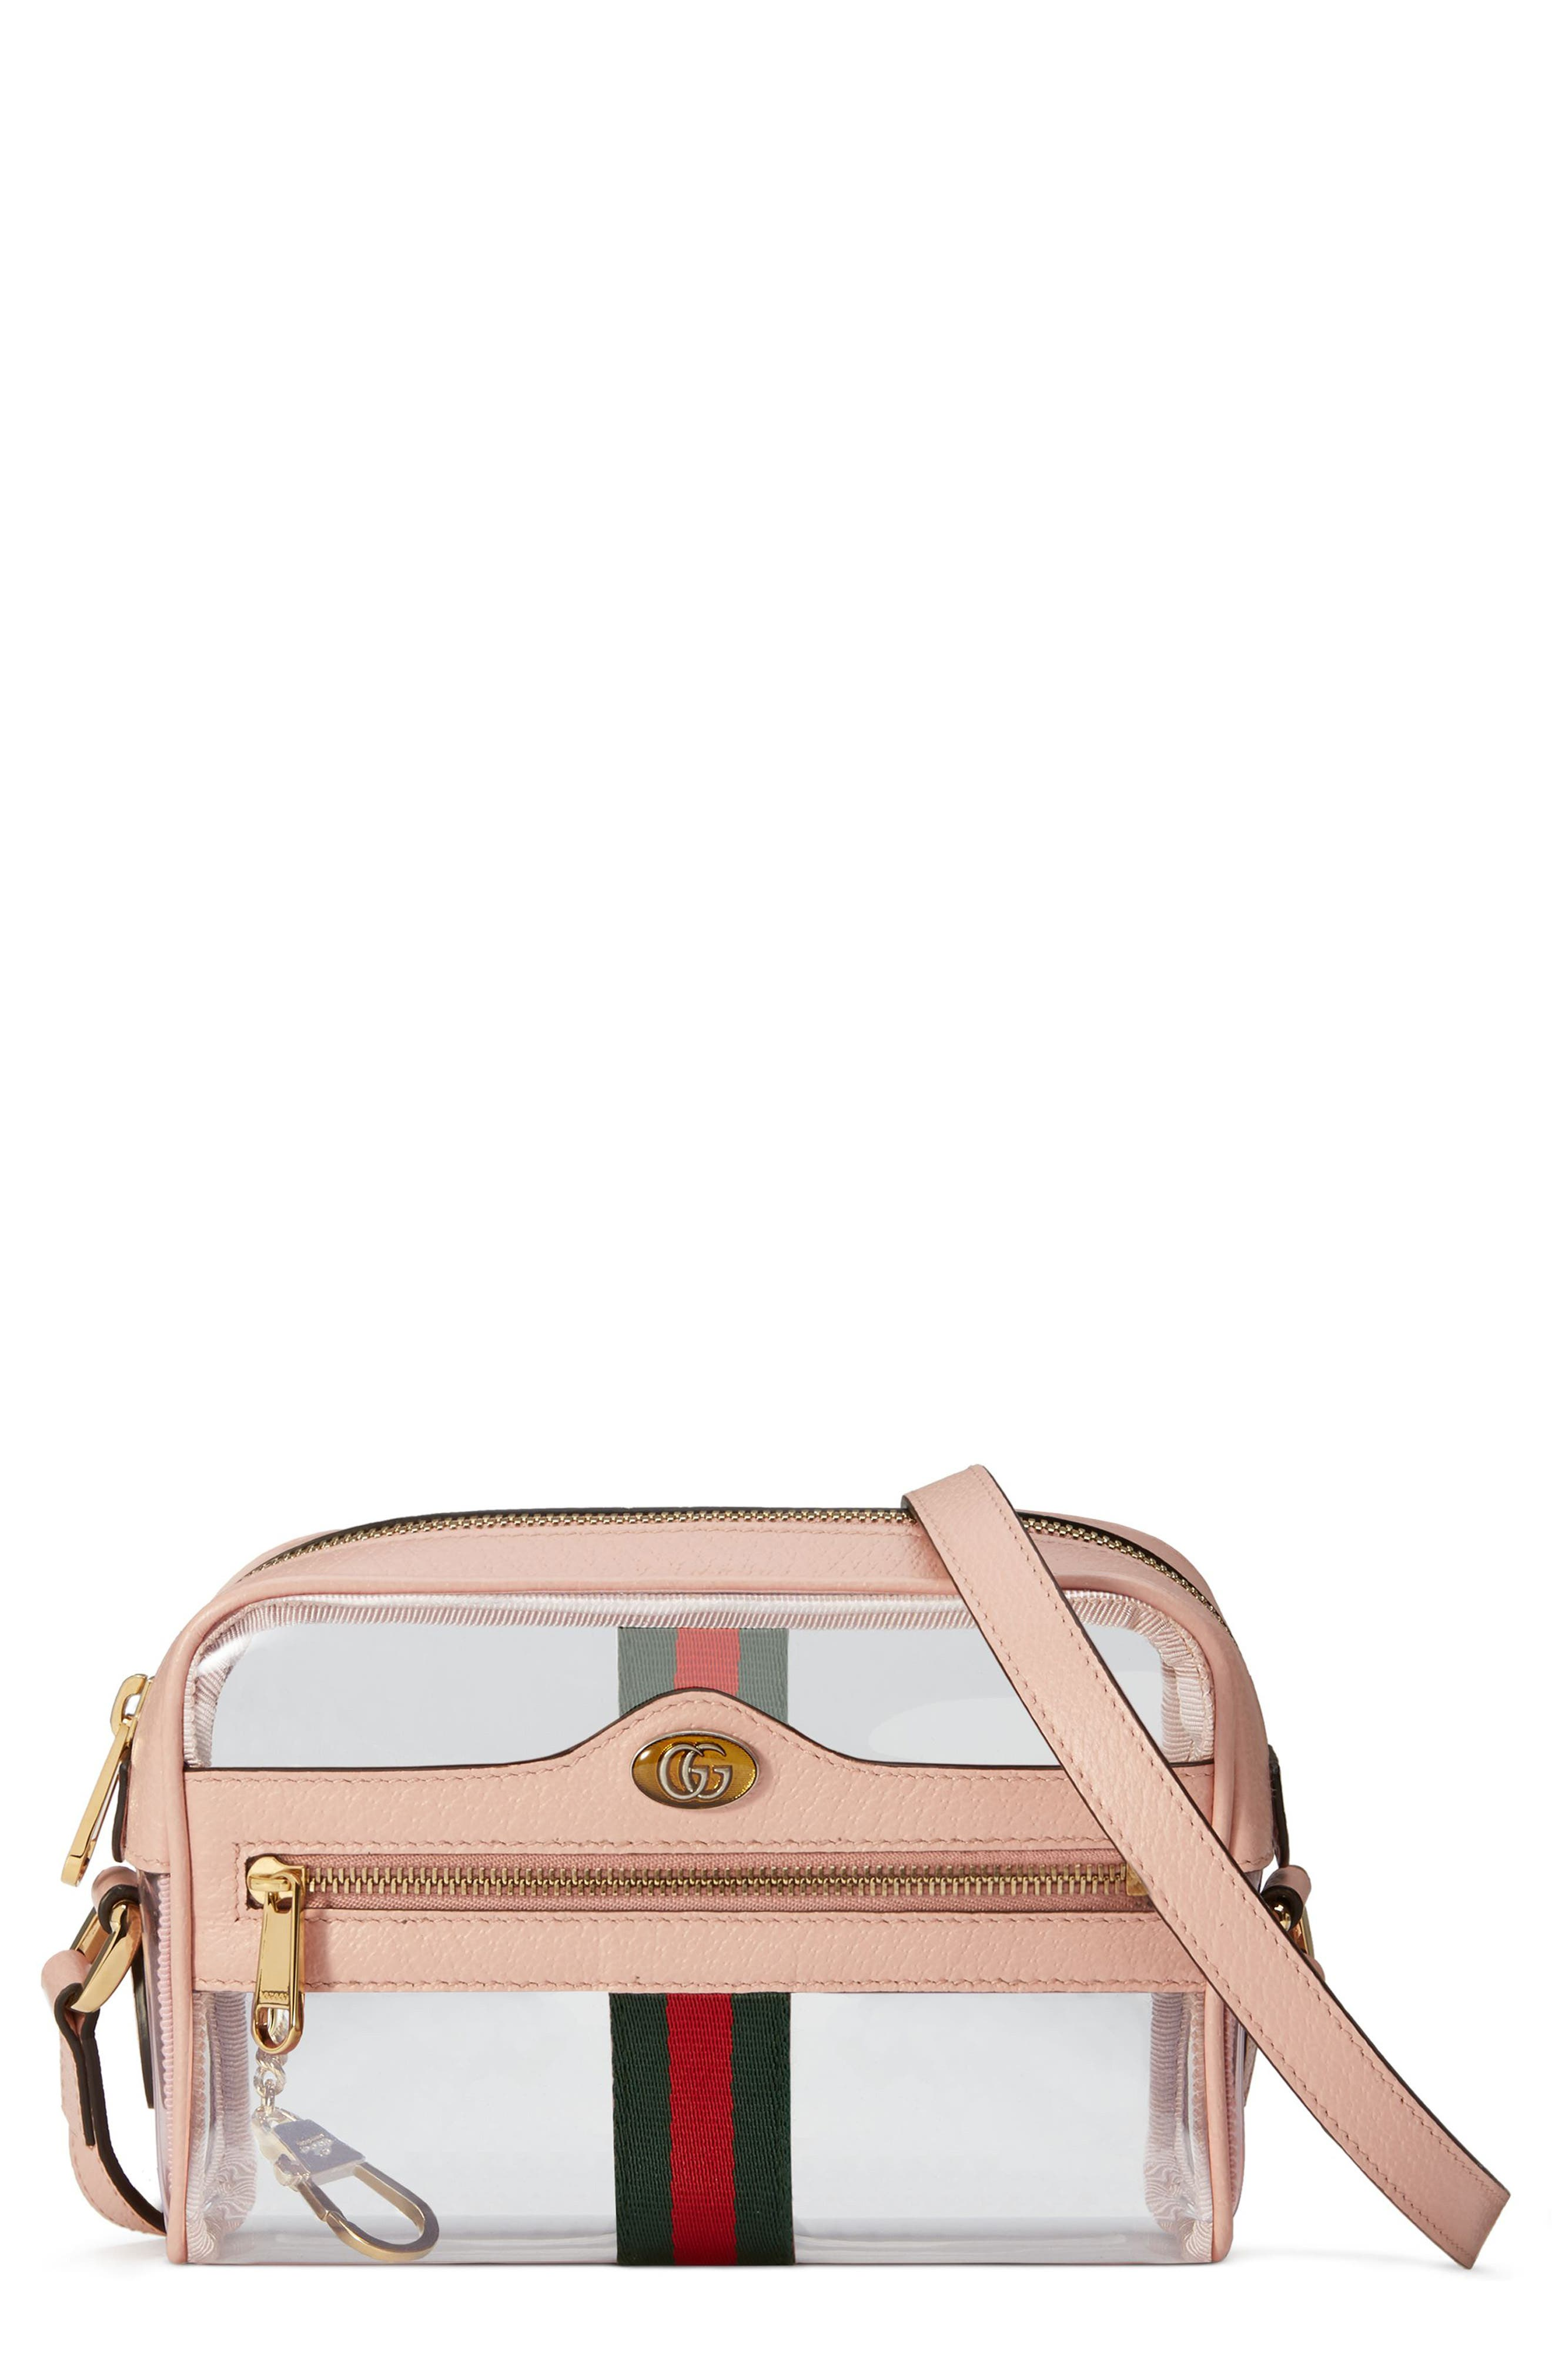 Mini Ophidia Transparent Convertible Bag,                         Main,                         color, PINK/ PERFECT PINK/ VERT RED